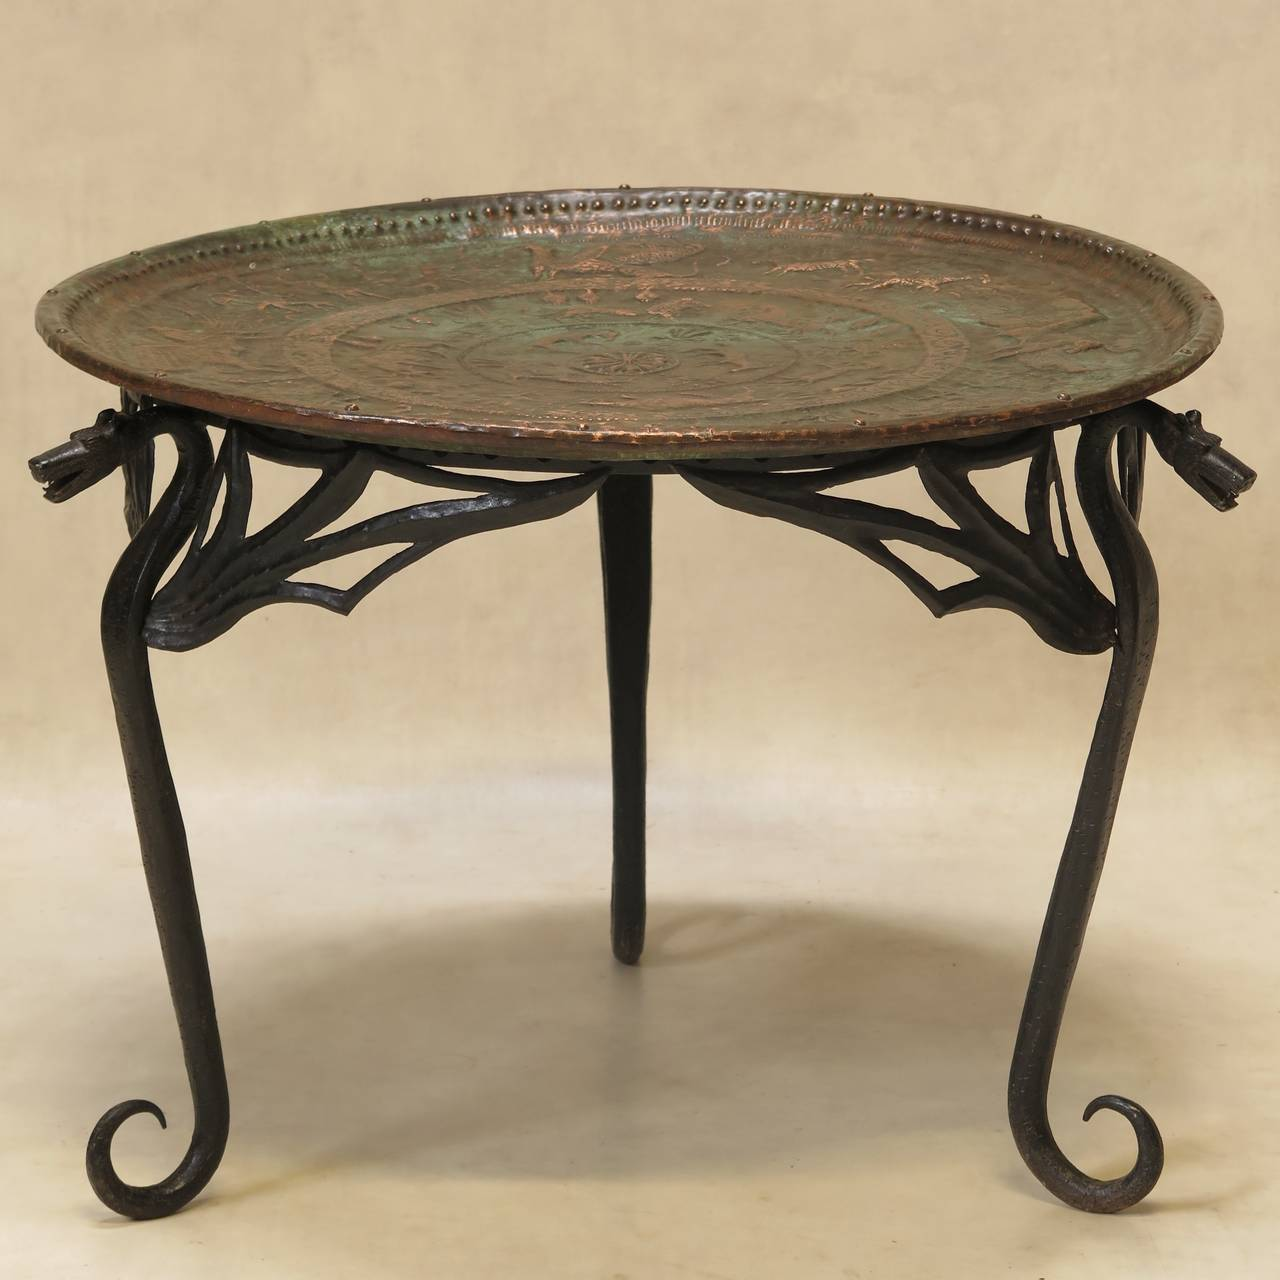 Unusual Round Coffee Or Side Table With A Wrought Iron Base Decorated Around The